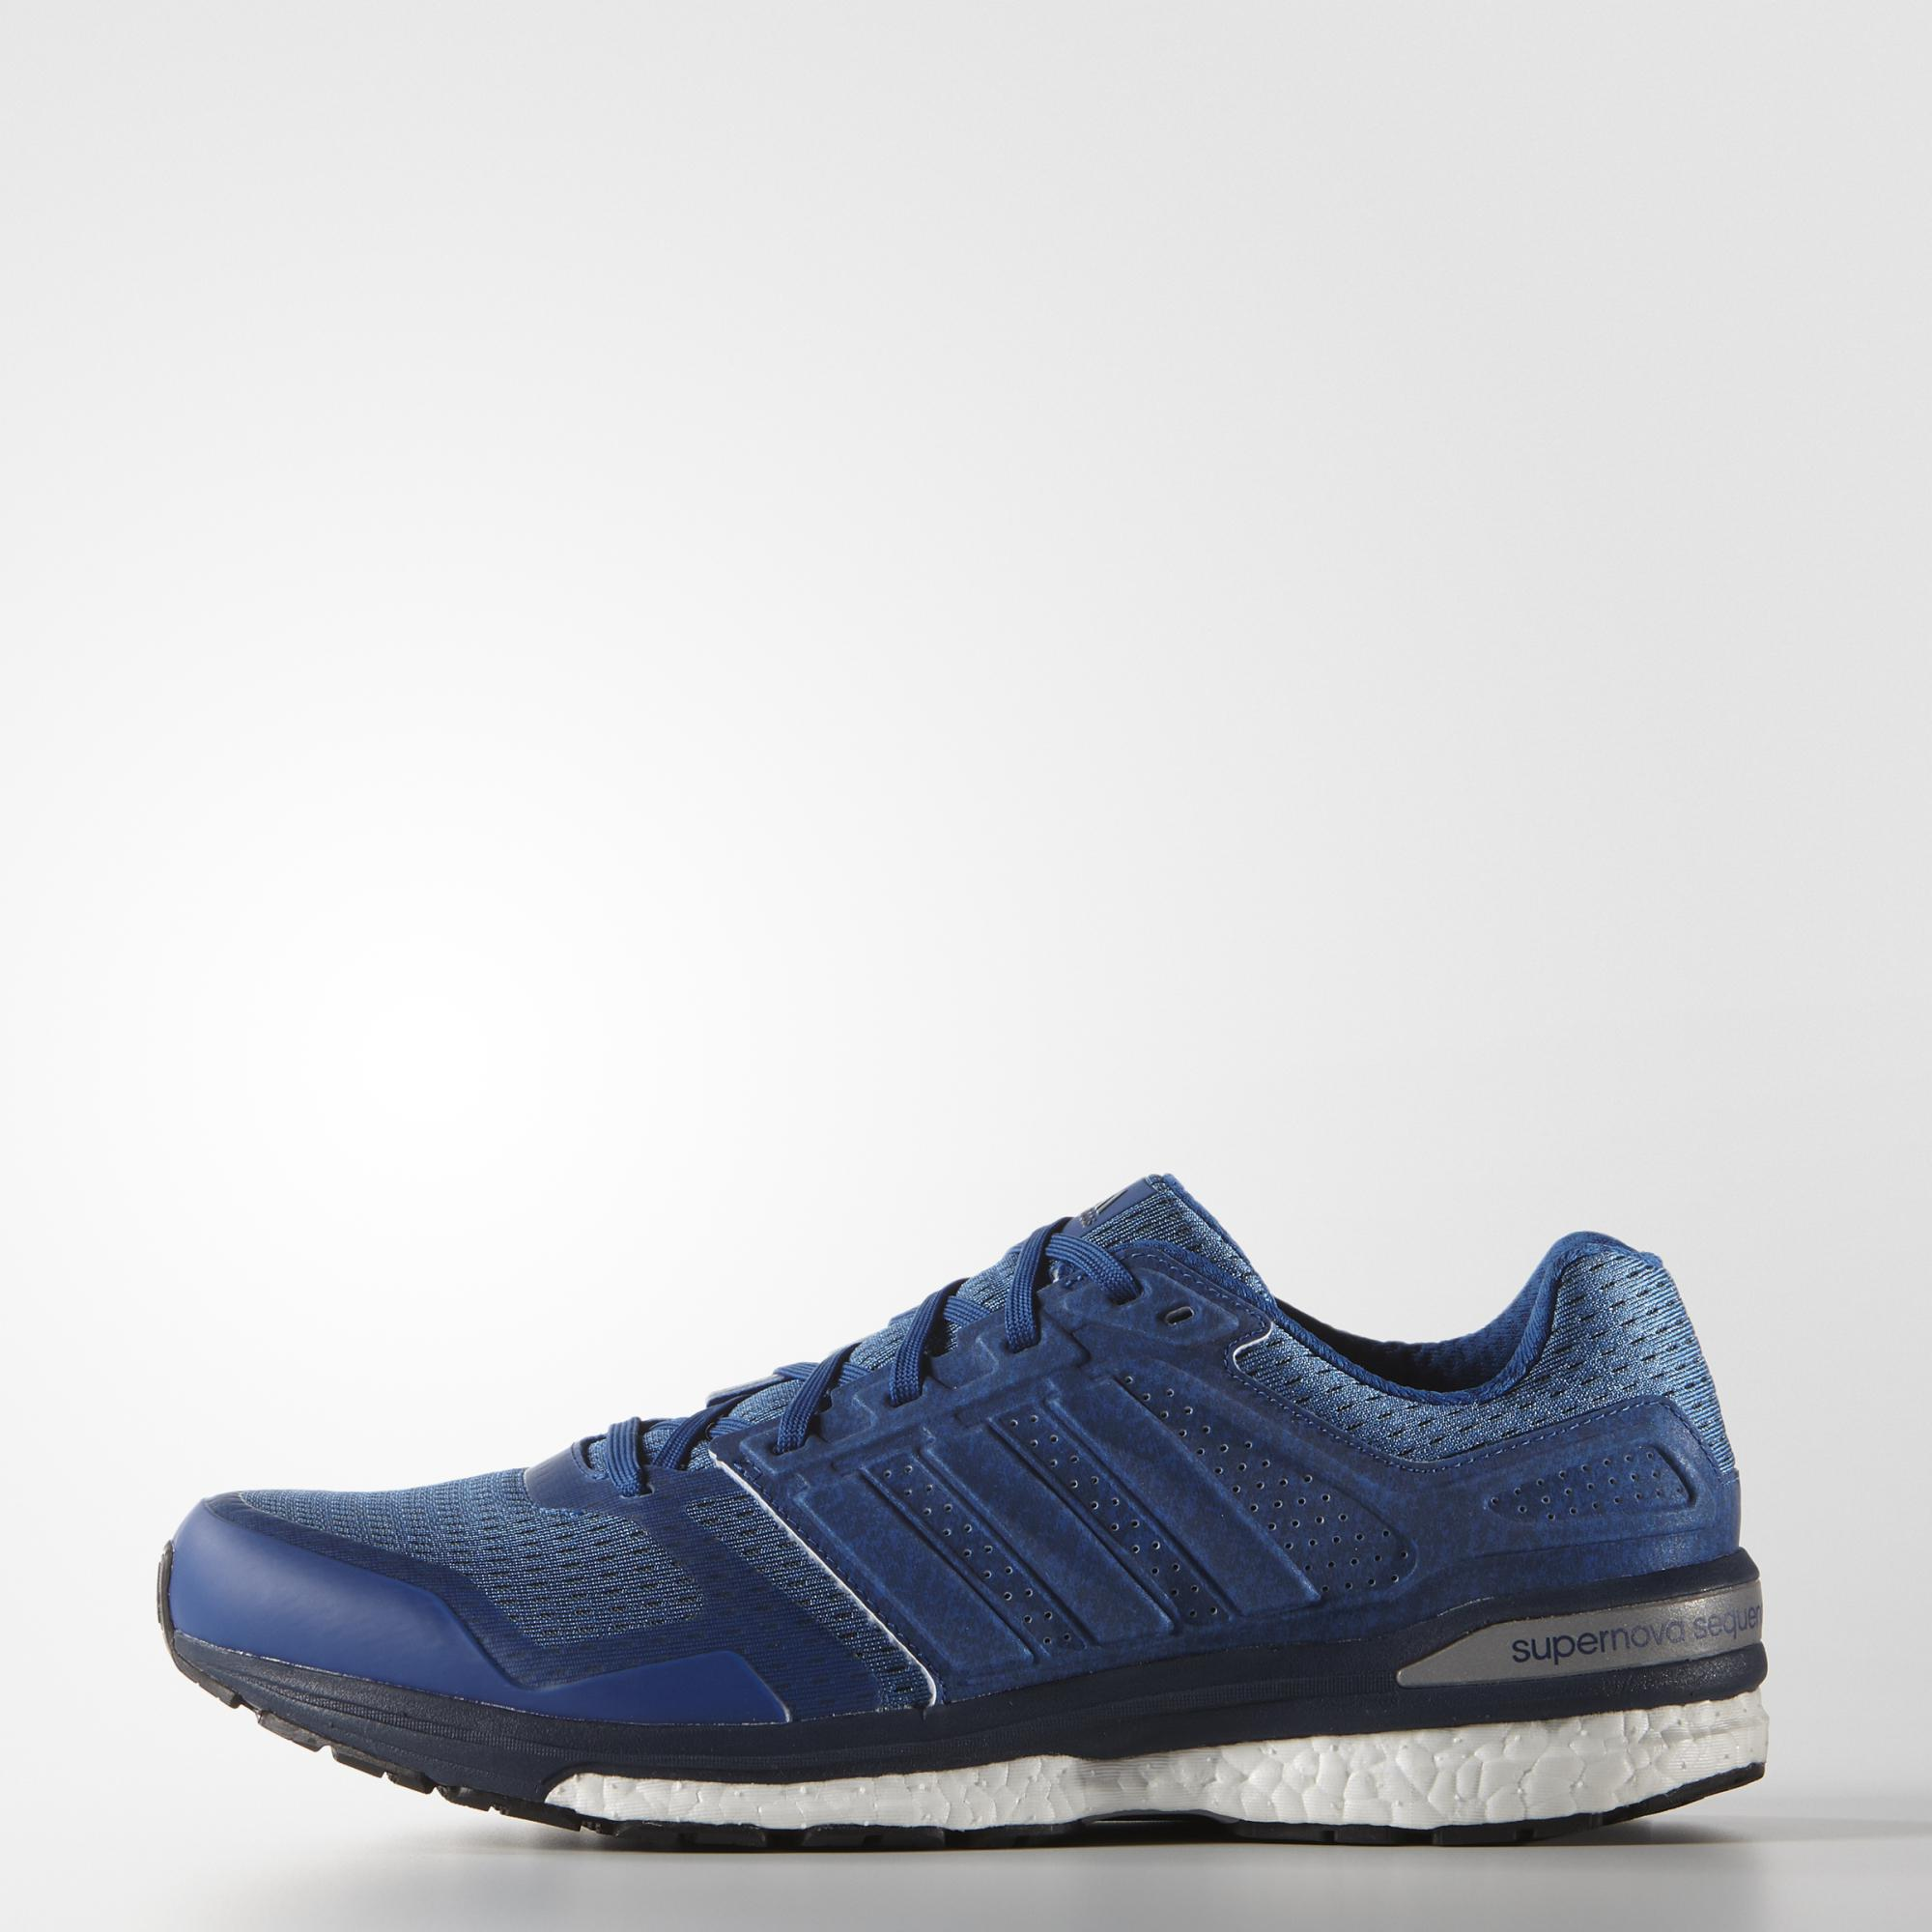 official photos 94ba3 0fff6 Adidas Mens Supernova Sequence Boost Running Shoes - Blue - Tennisnuts.com